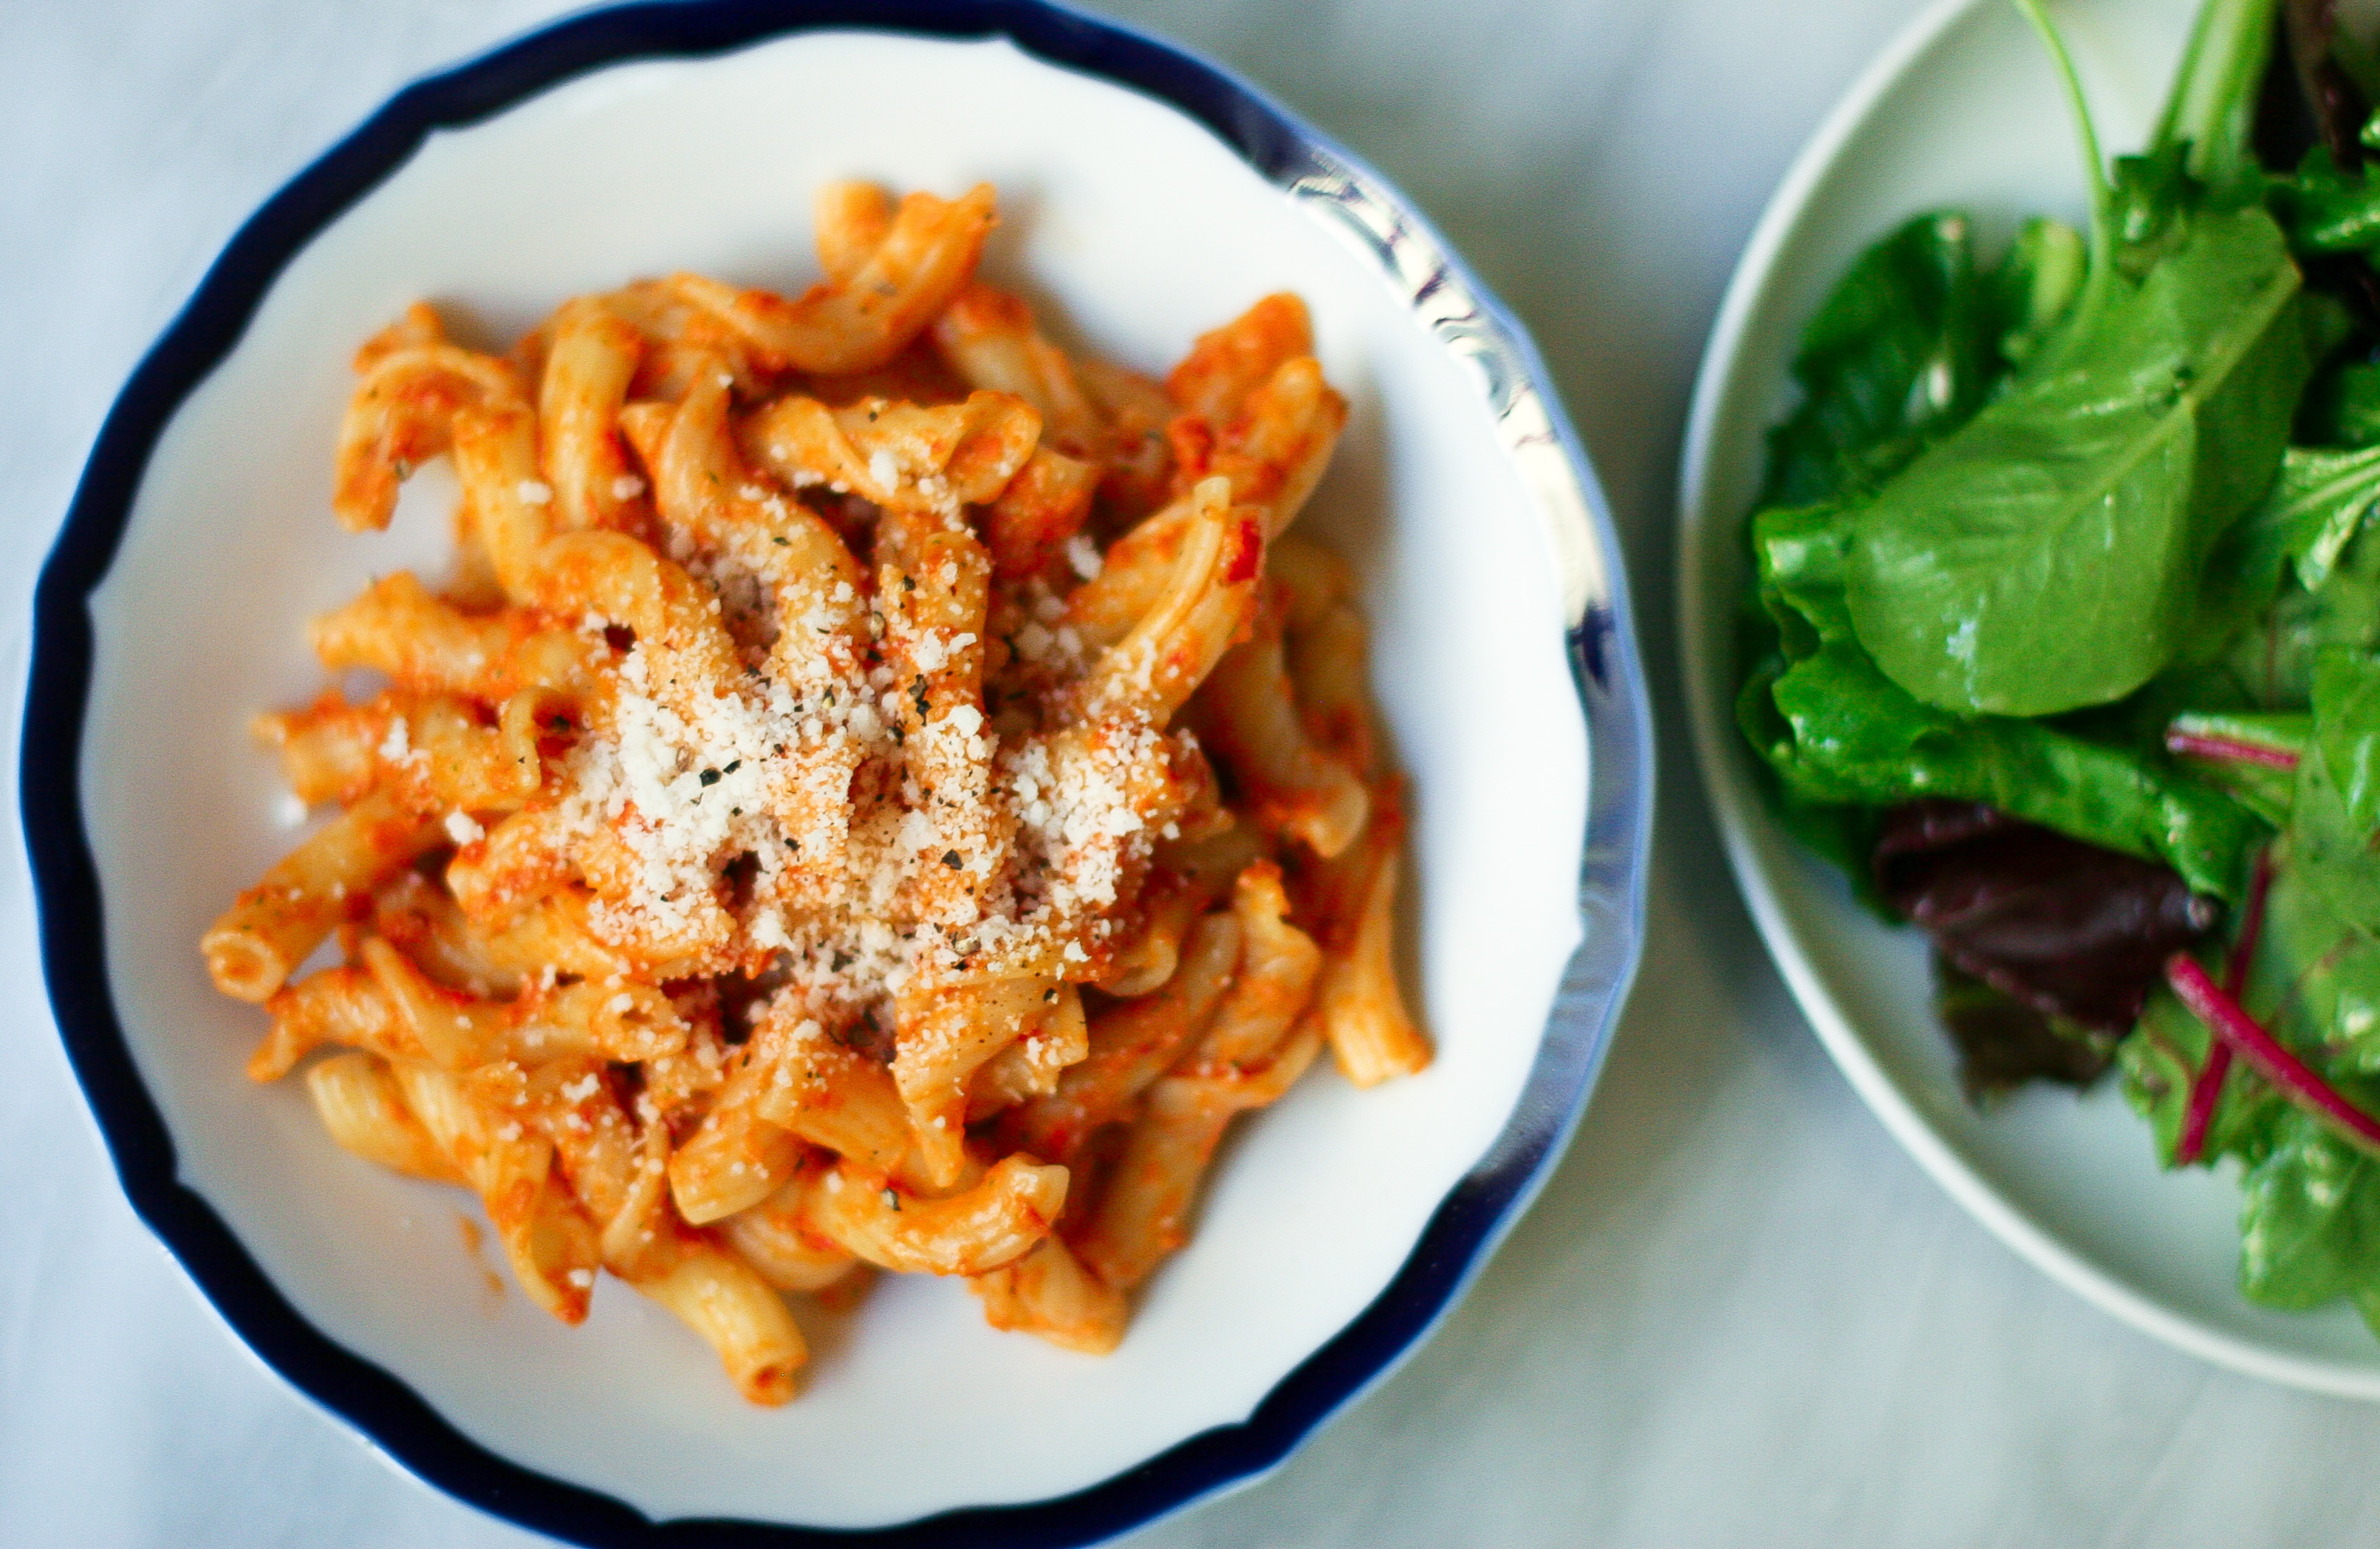 Pasta with No-Cook Tomato Sauce - Erica Julson